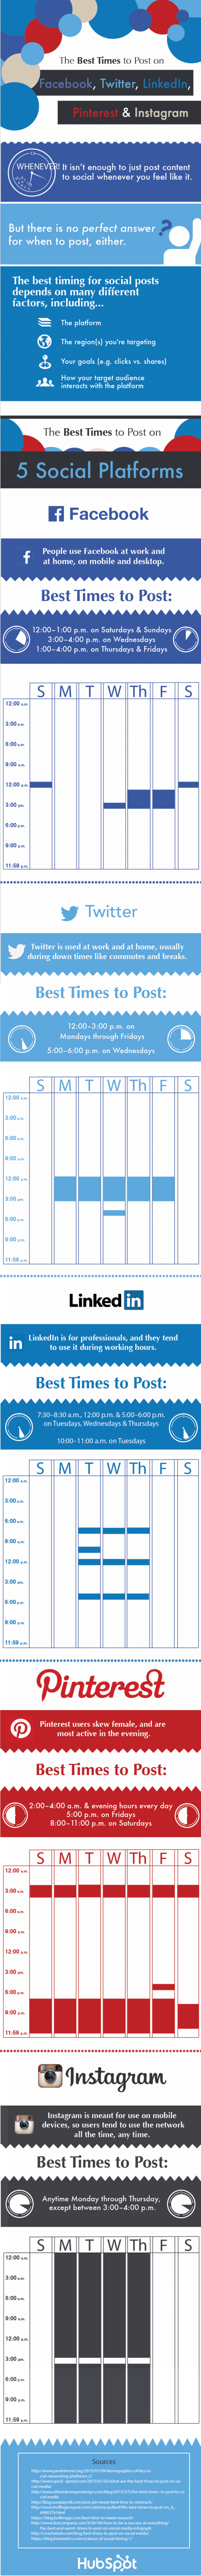 best-times-to-post-on-social-media-infographic